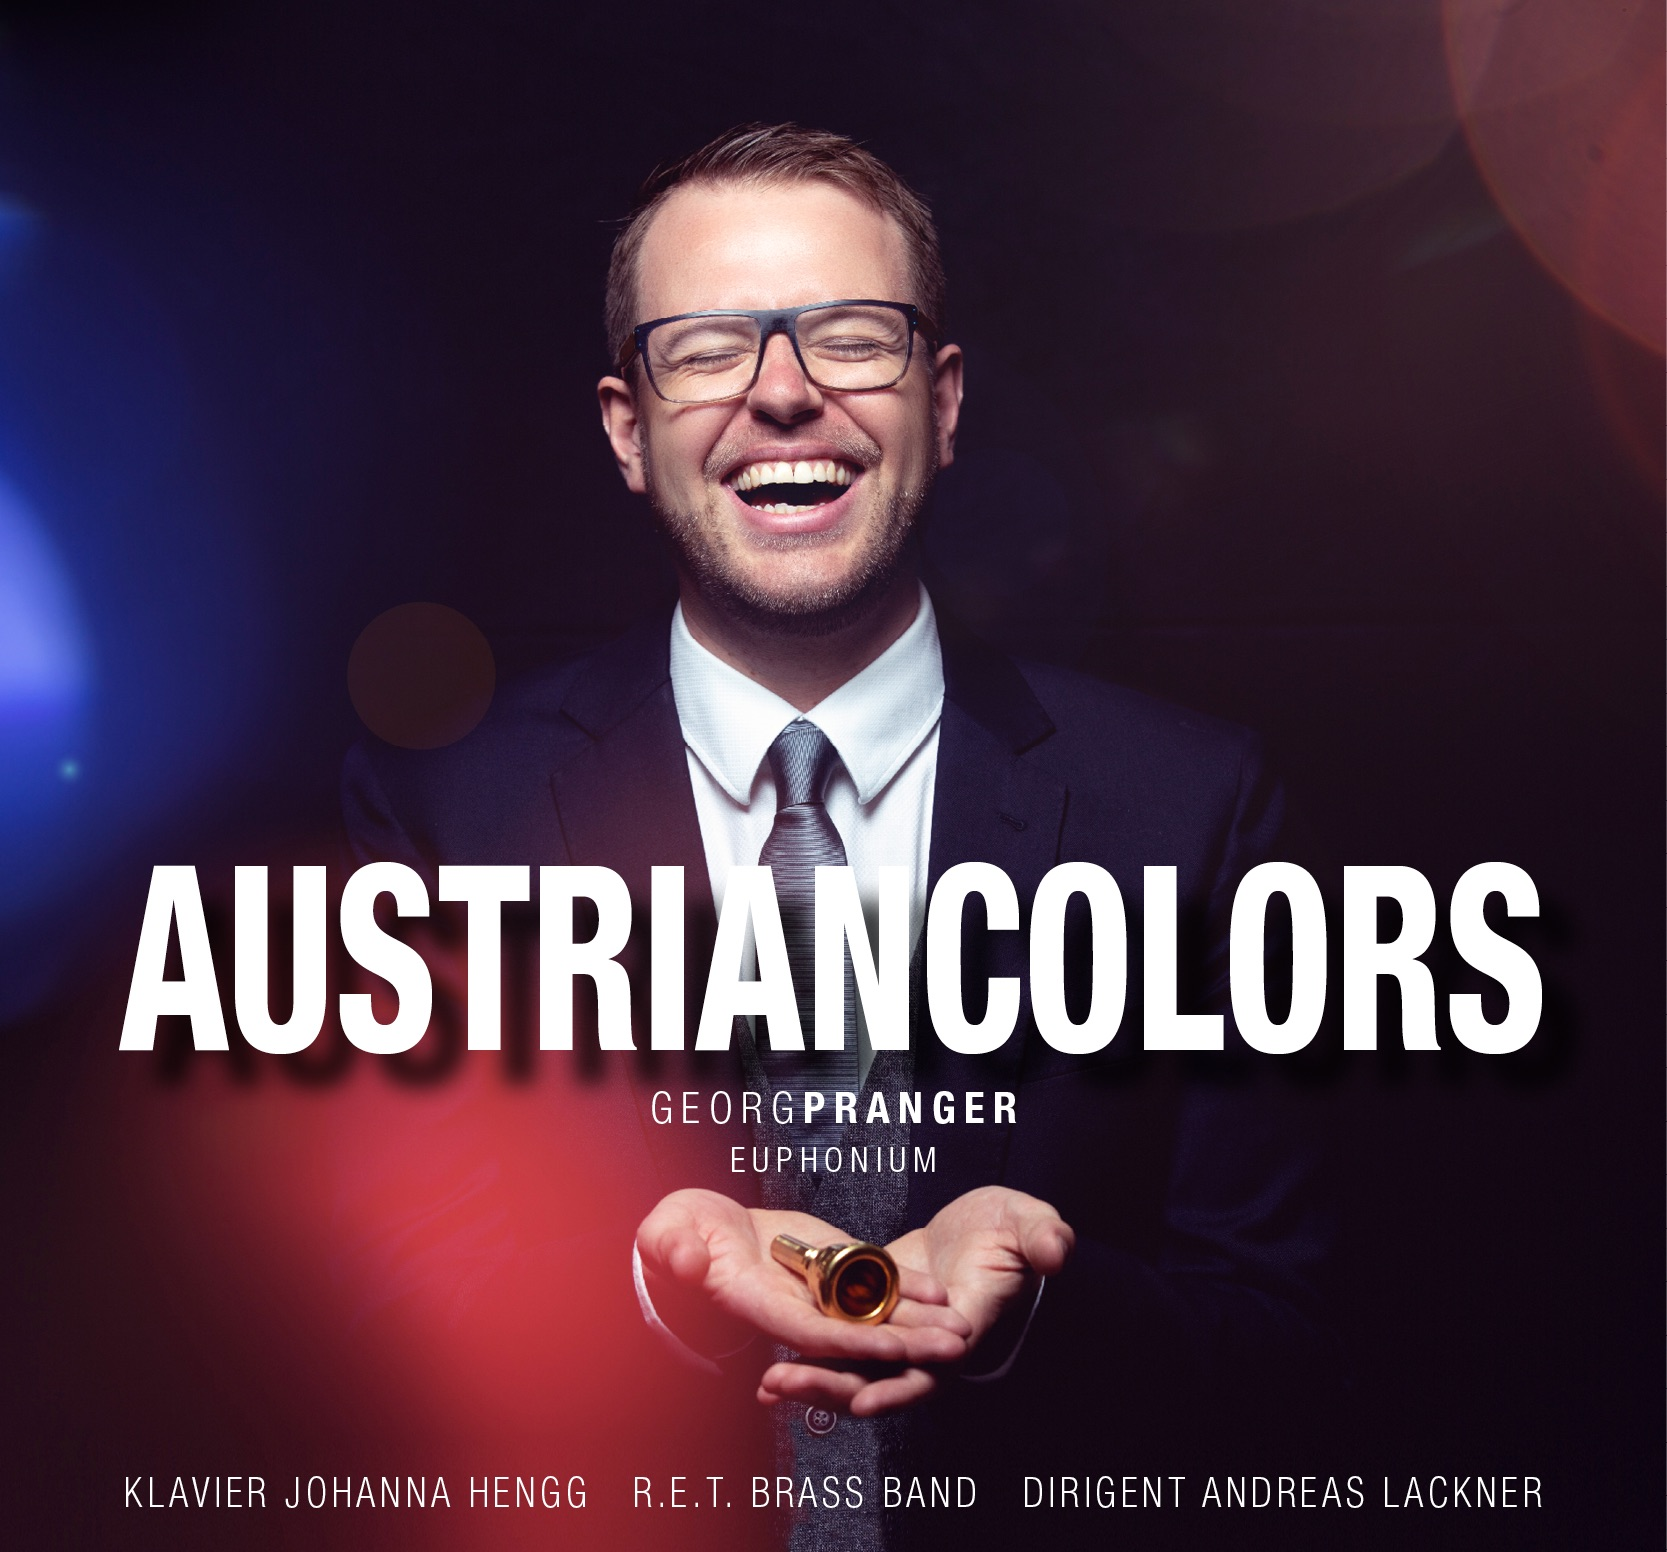 CD - Austrian Colors - Georg Pranger - accompanied by piano and brass band